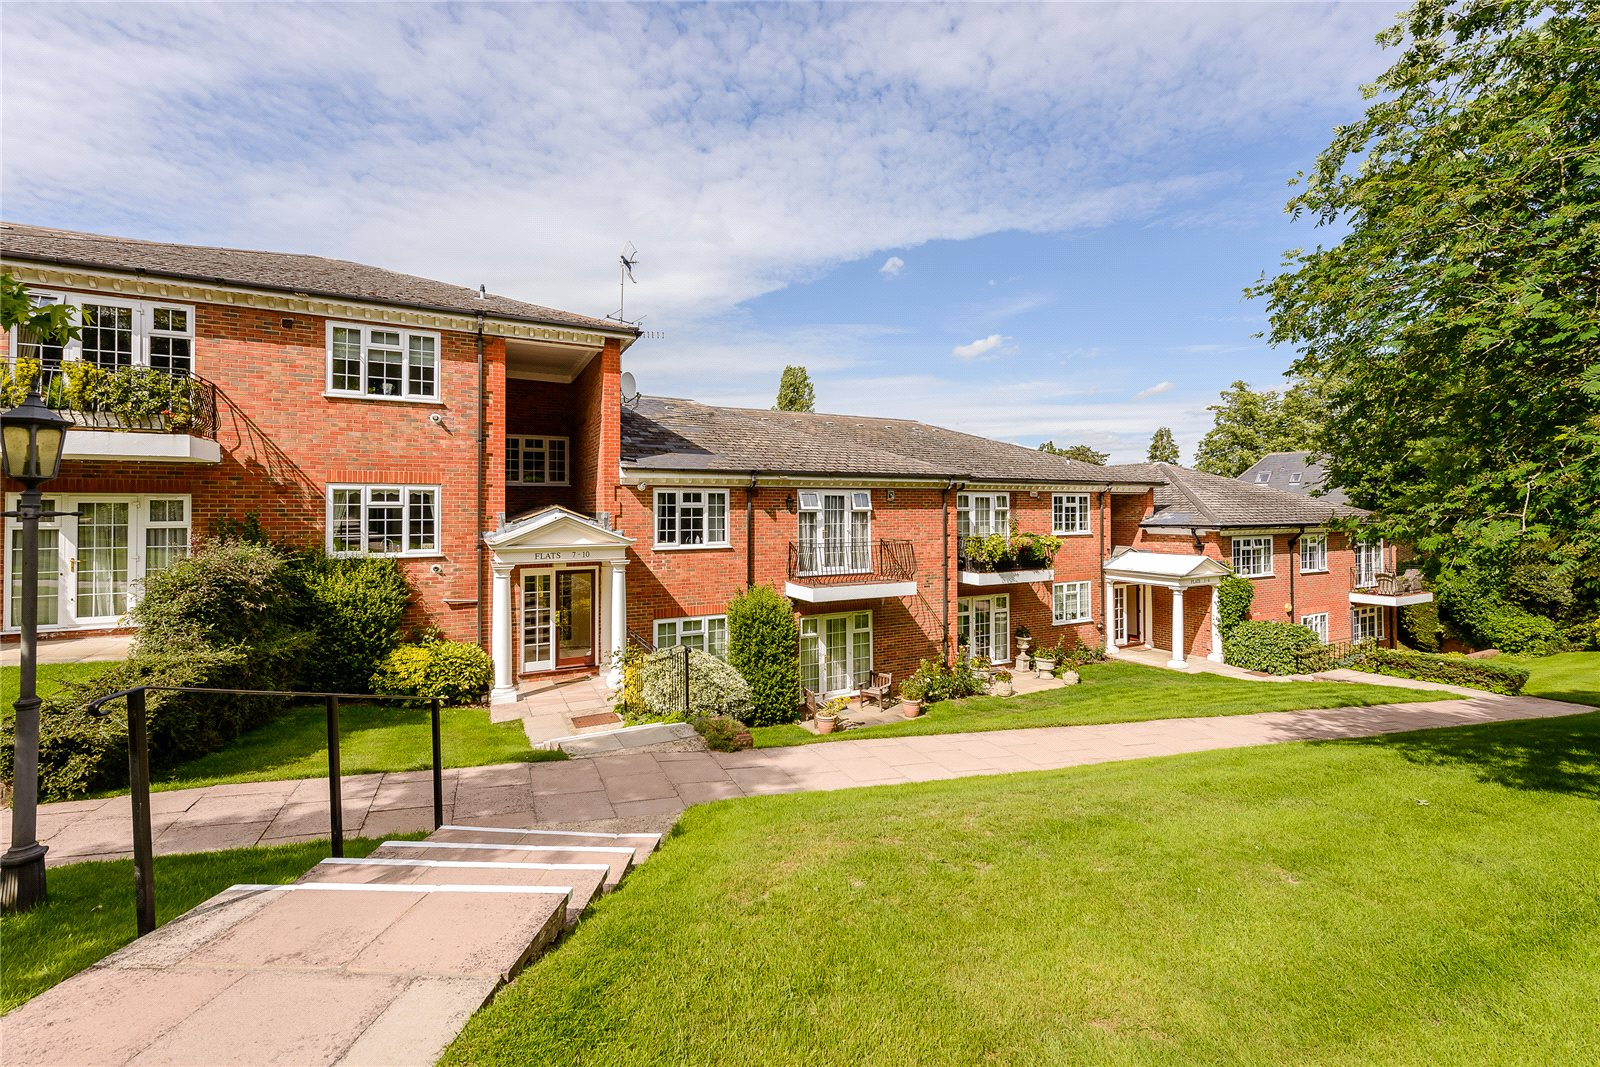 公寓 為 出售 在 Penn Haven, 3 Oak End Way, Gerrards Cross, Buckinghamshire, SL9 Gerrards Cross, 英格蘭